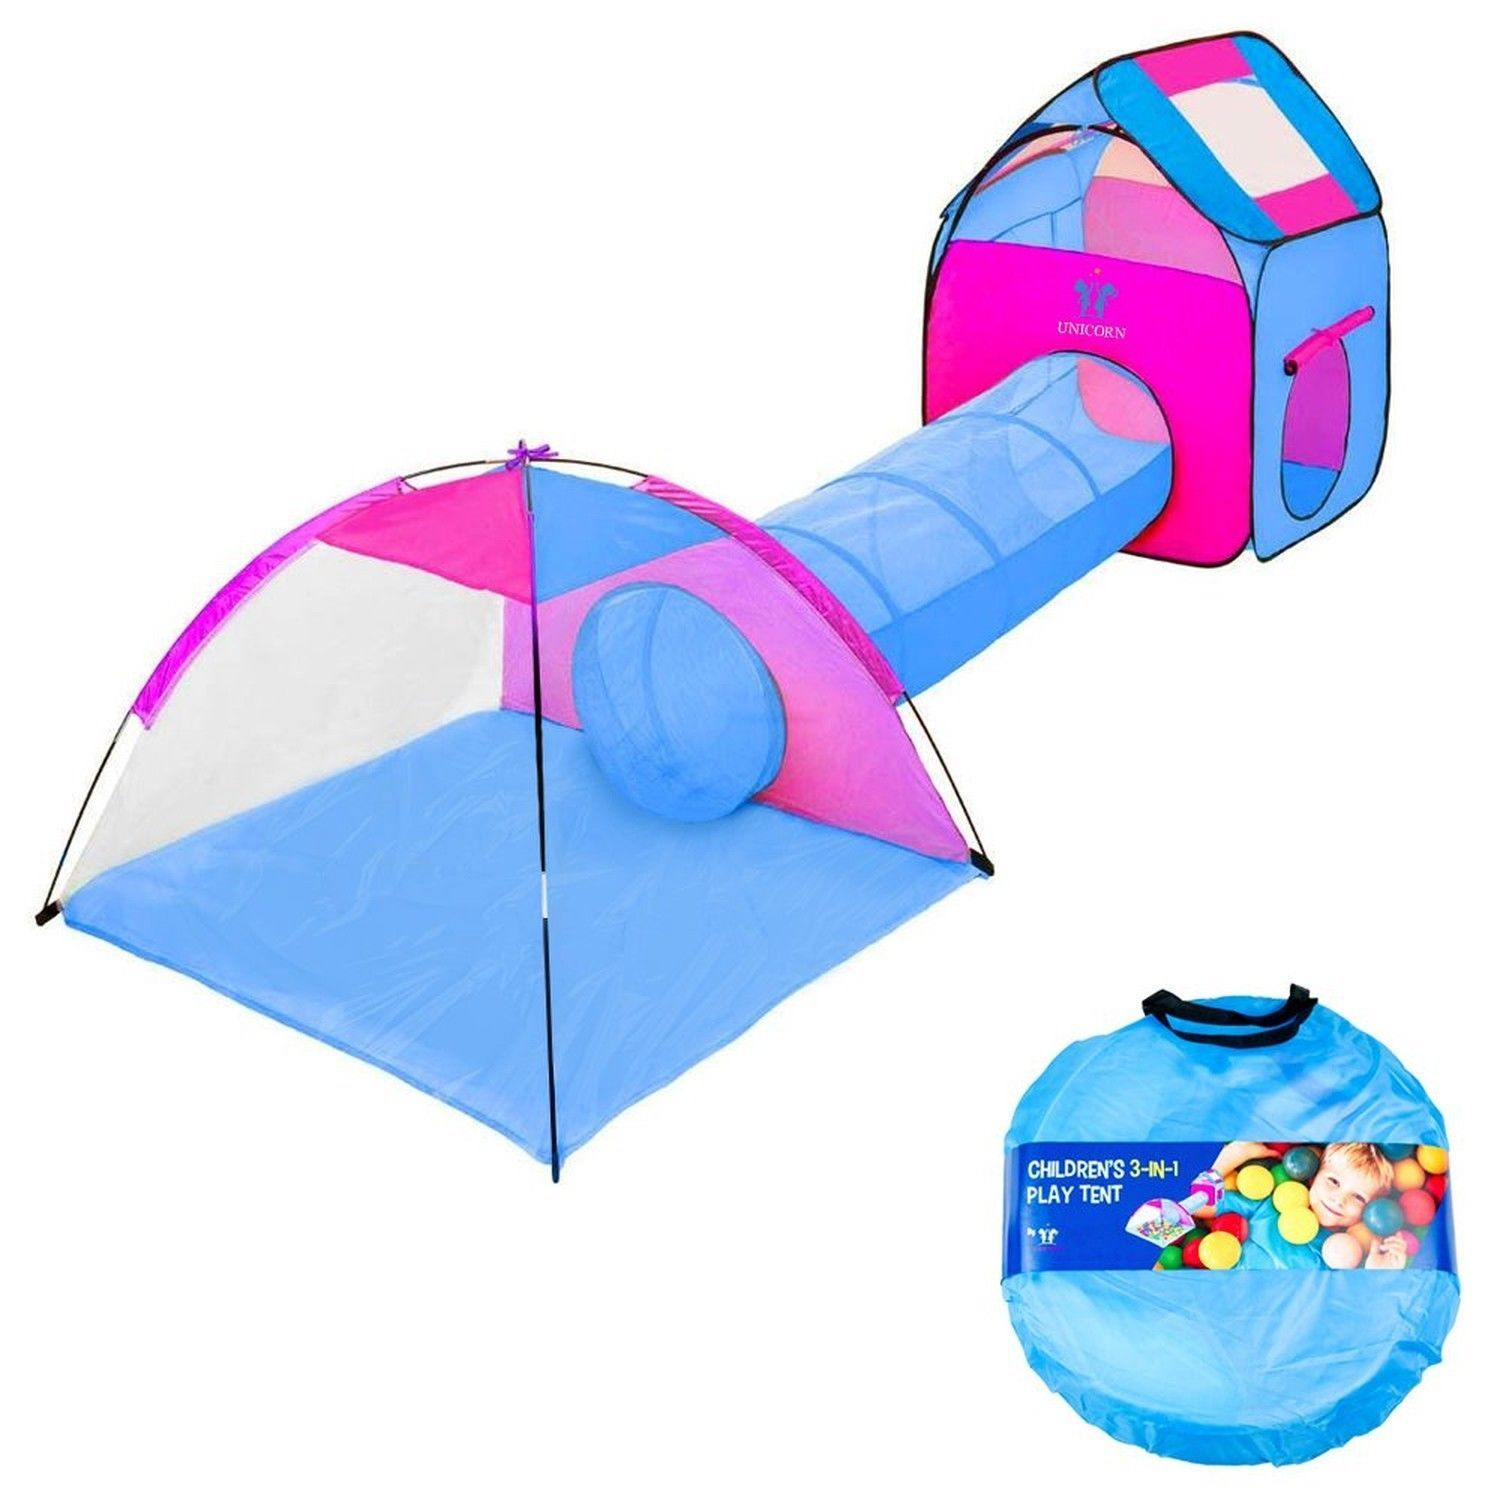 Kids Play Tent With Tunnel 3-in-1 Playhut by Unicorn Hours of Indoor  sc 1 st  Pinterest & Kids Play Tent With Tunnel 3-in-1 Playhut by Unicorn Hours of ...